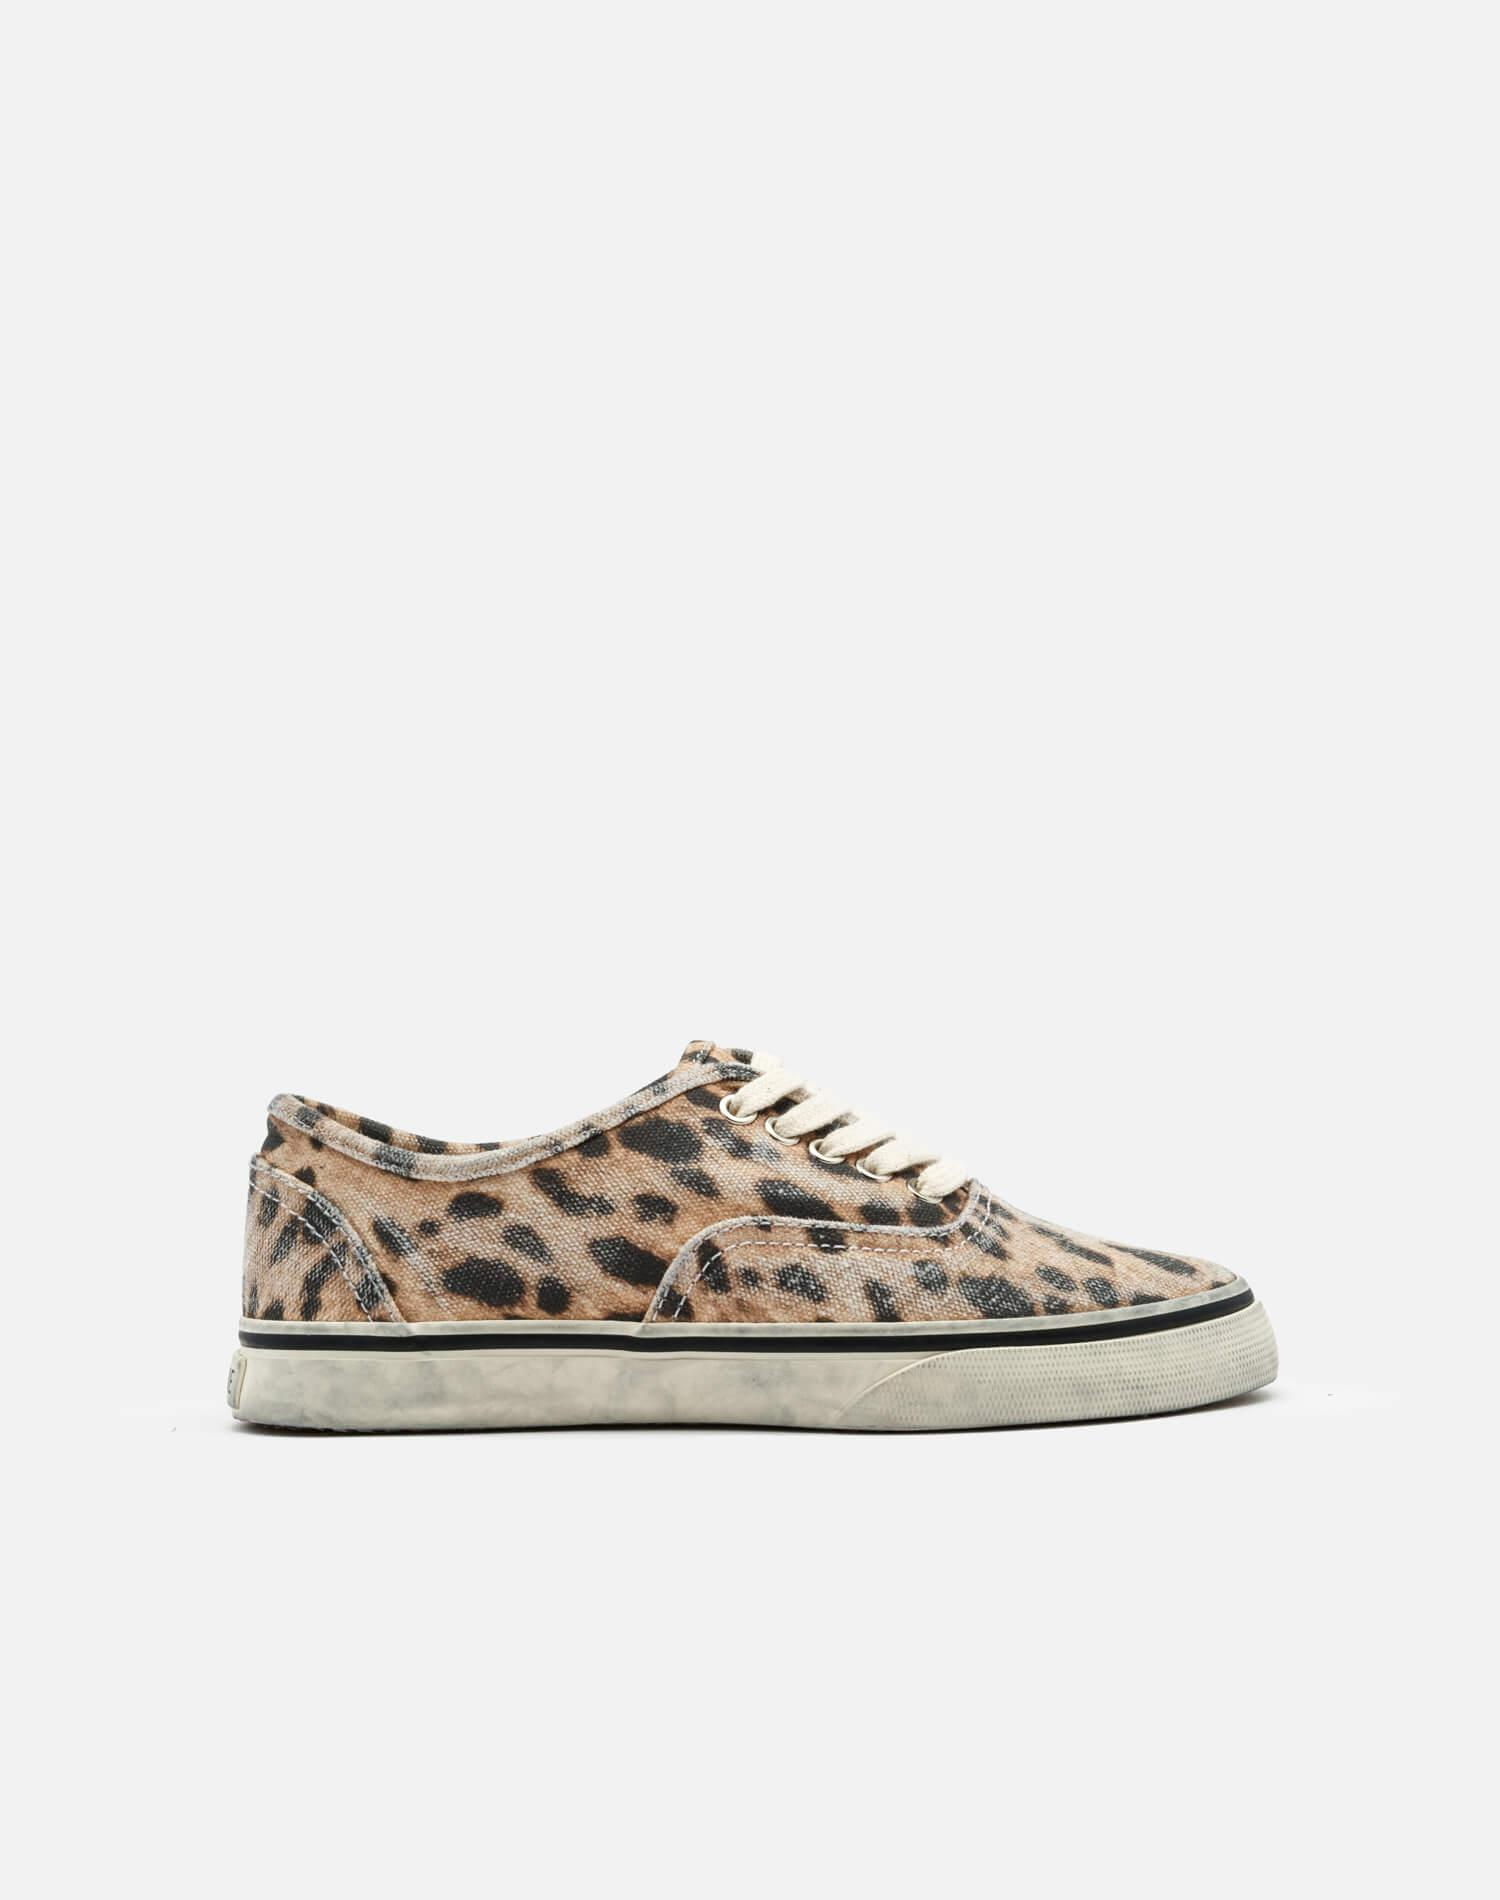 70s Low Top Skate - Faded Leopard Print